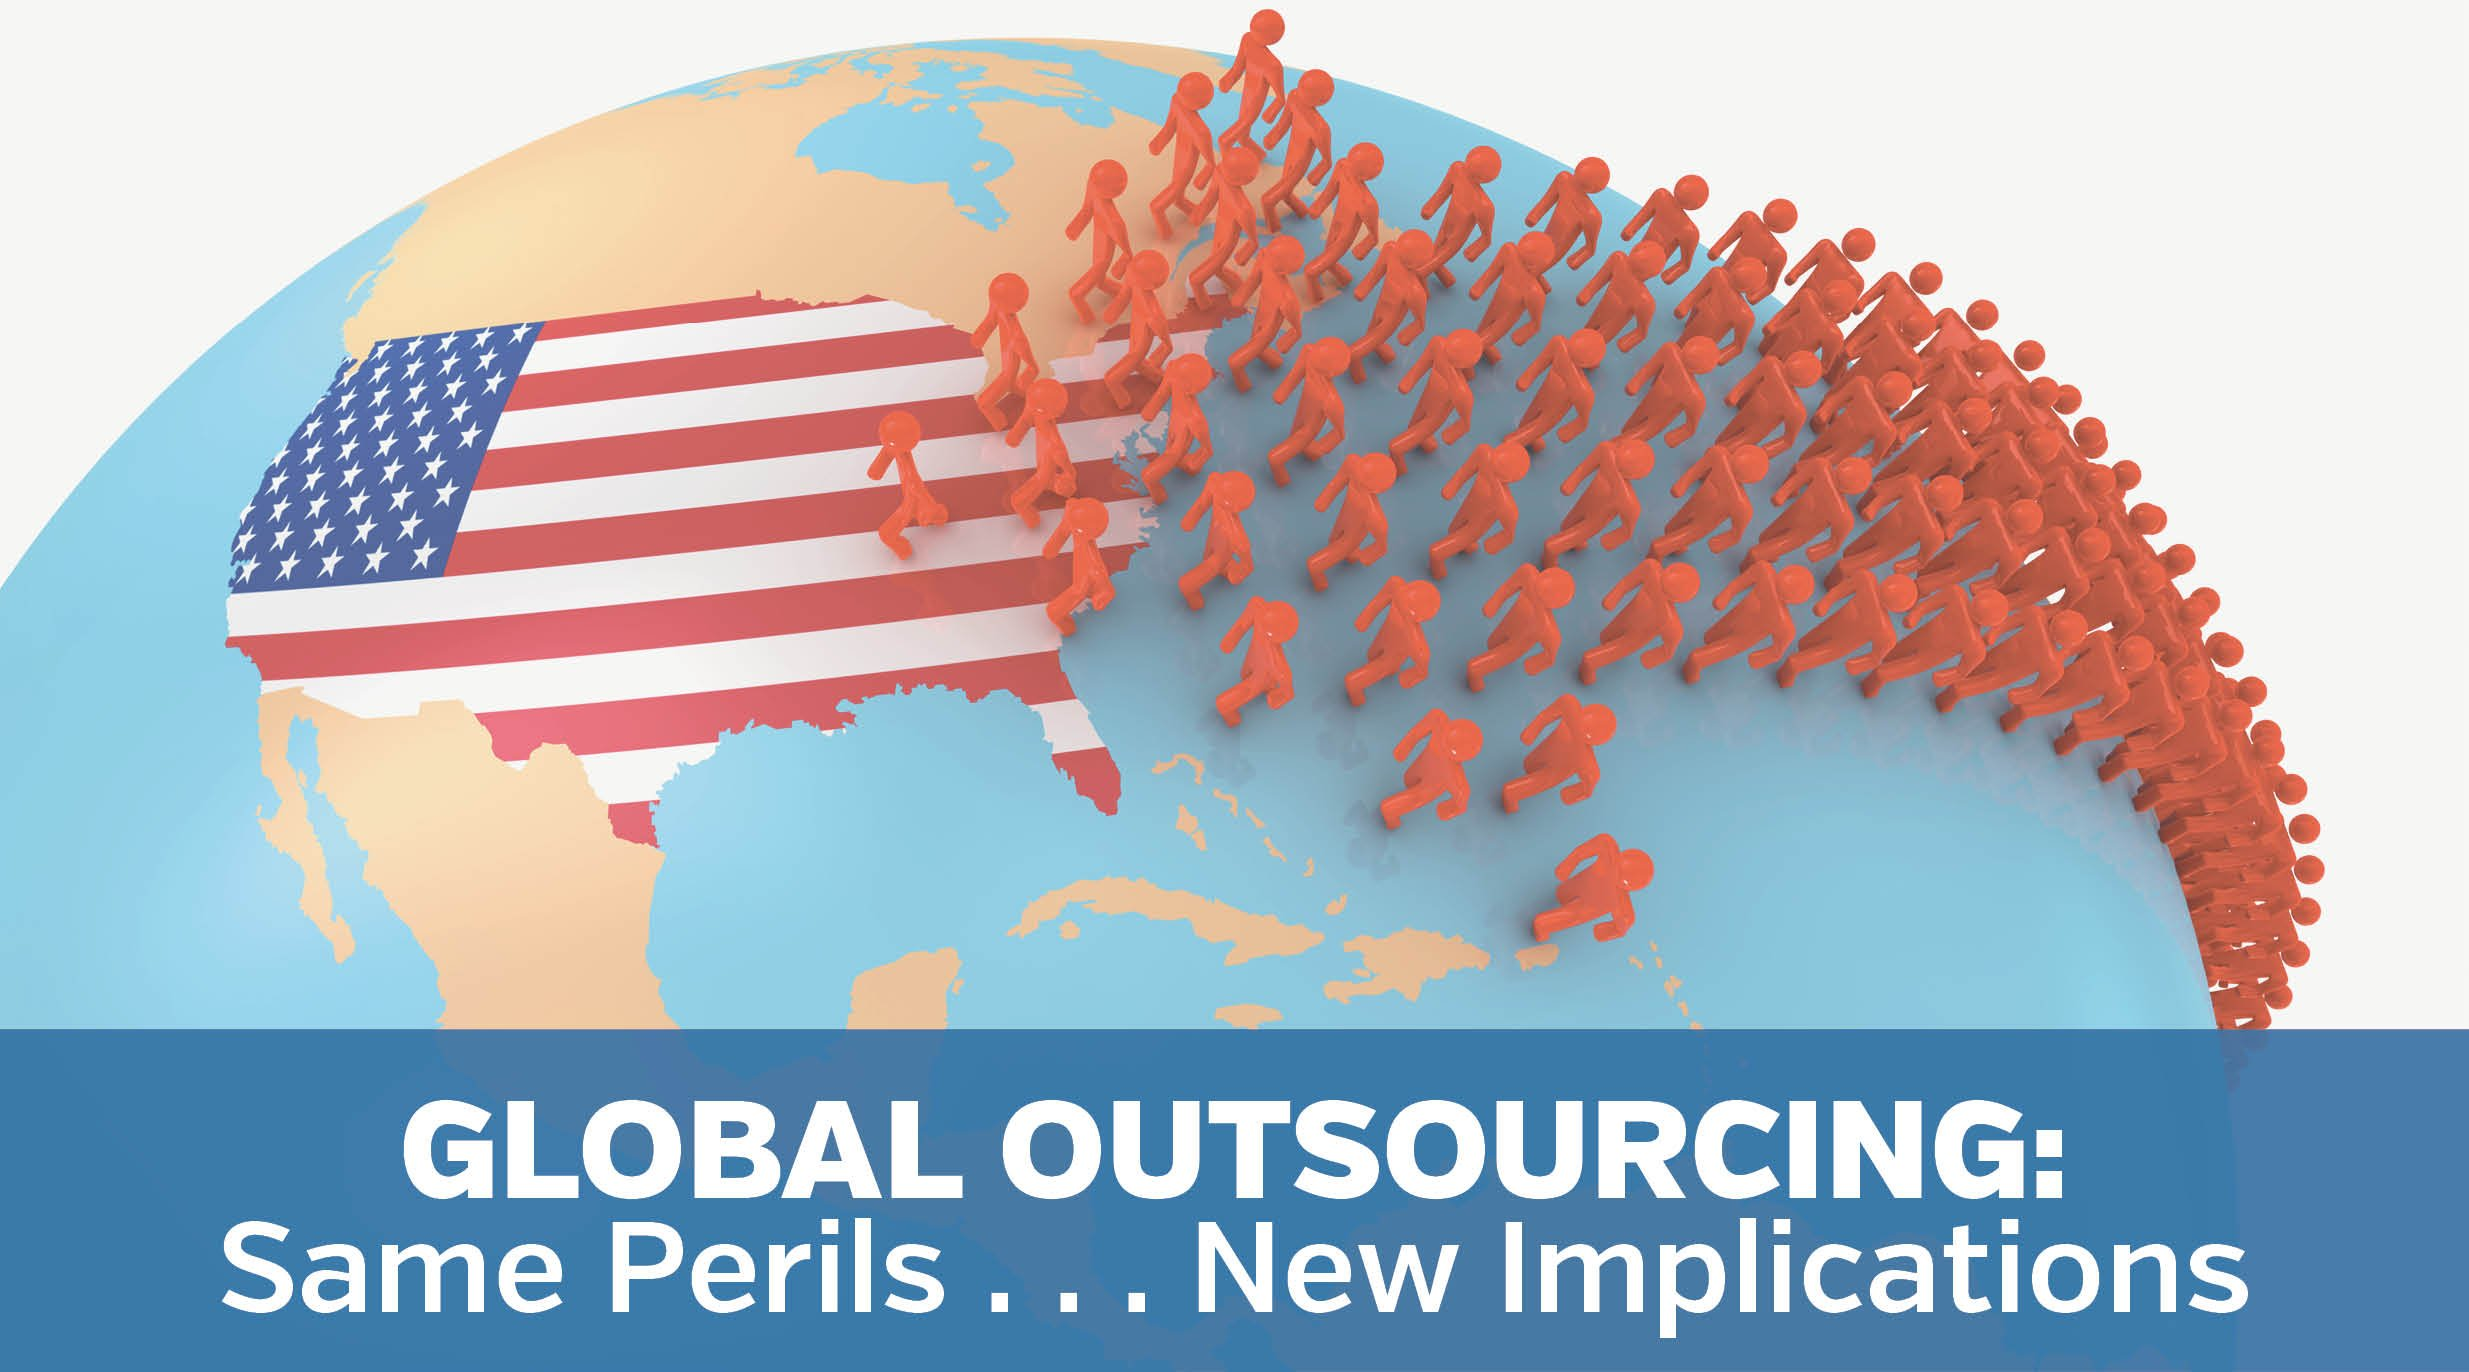 Global Outsourcing, Same Perils, New Implications - updated.jpg